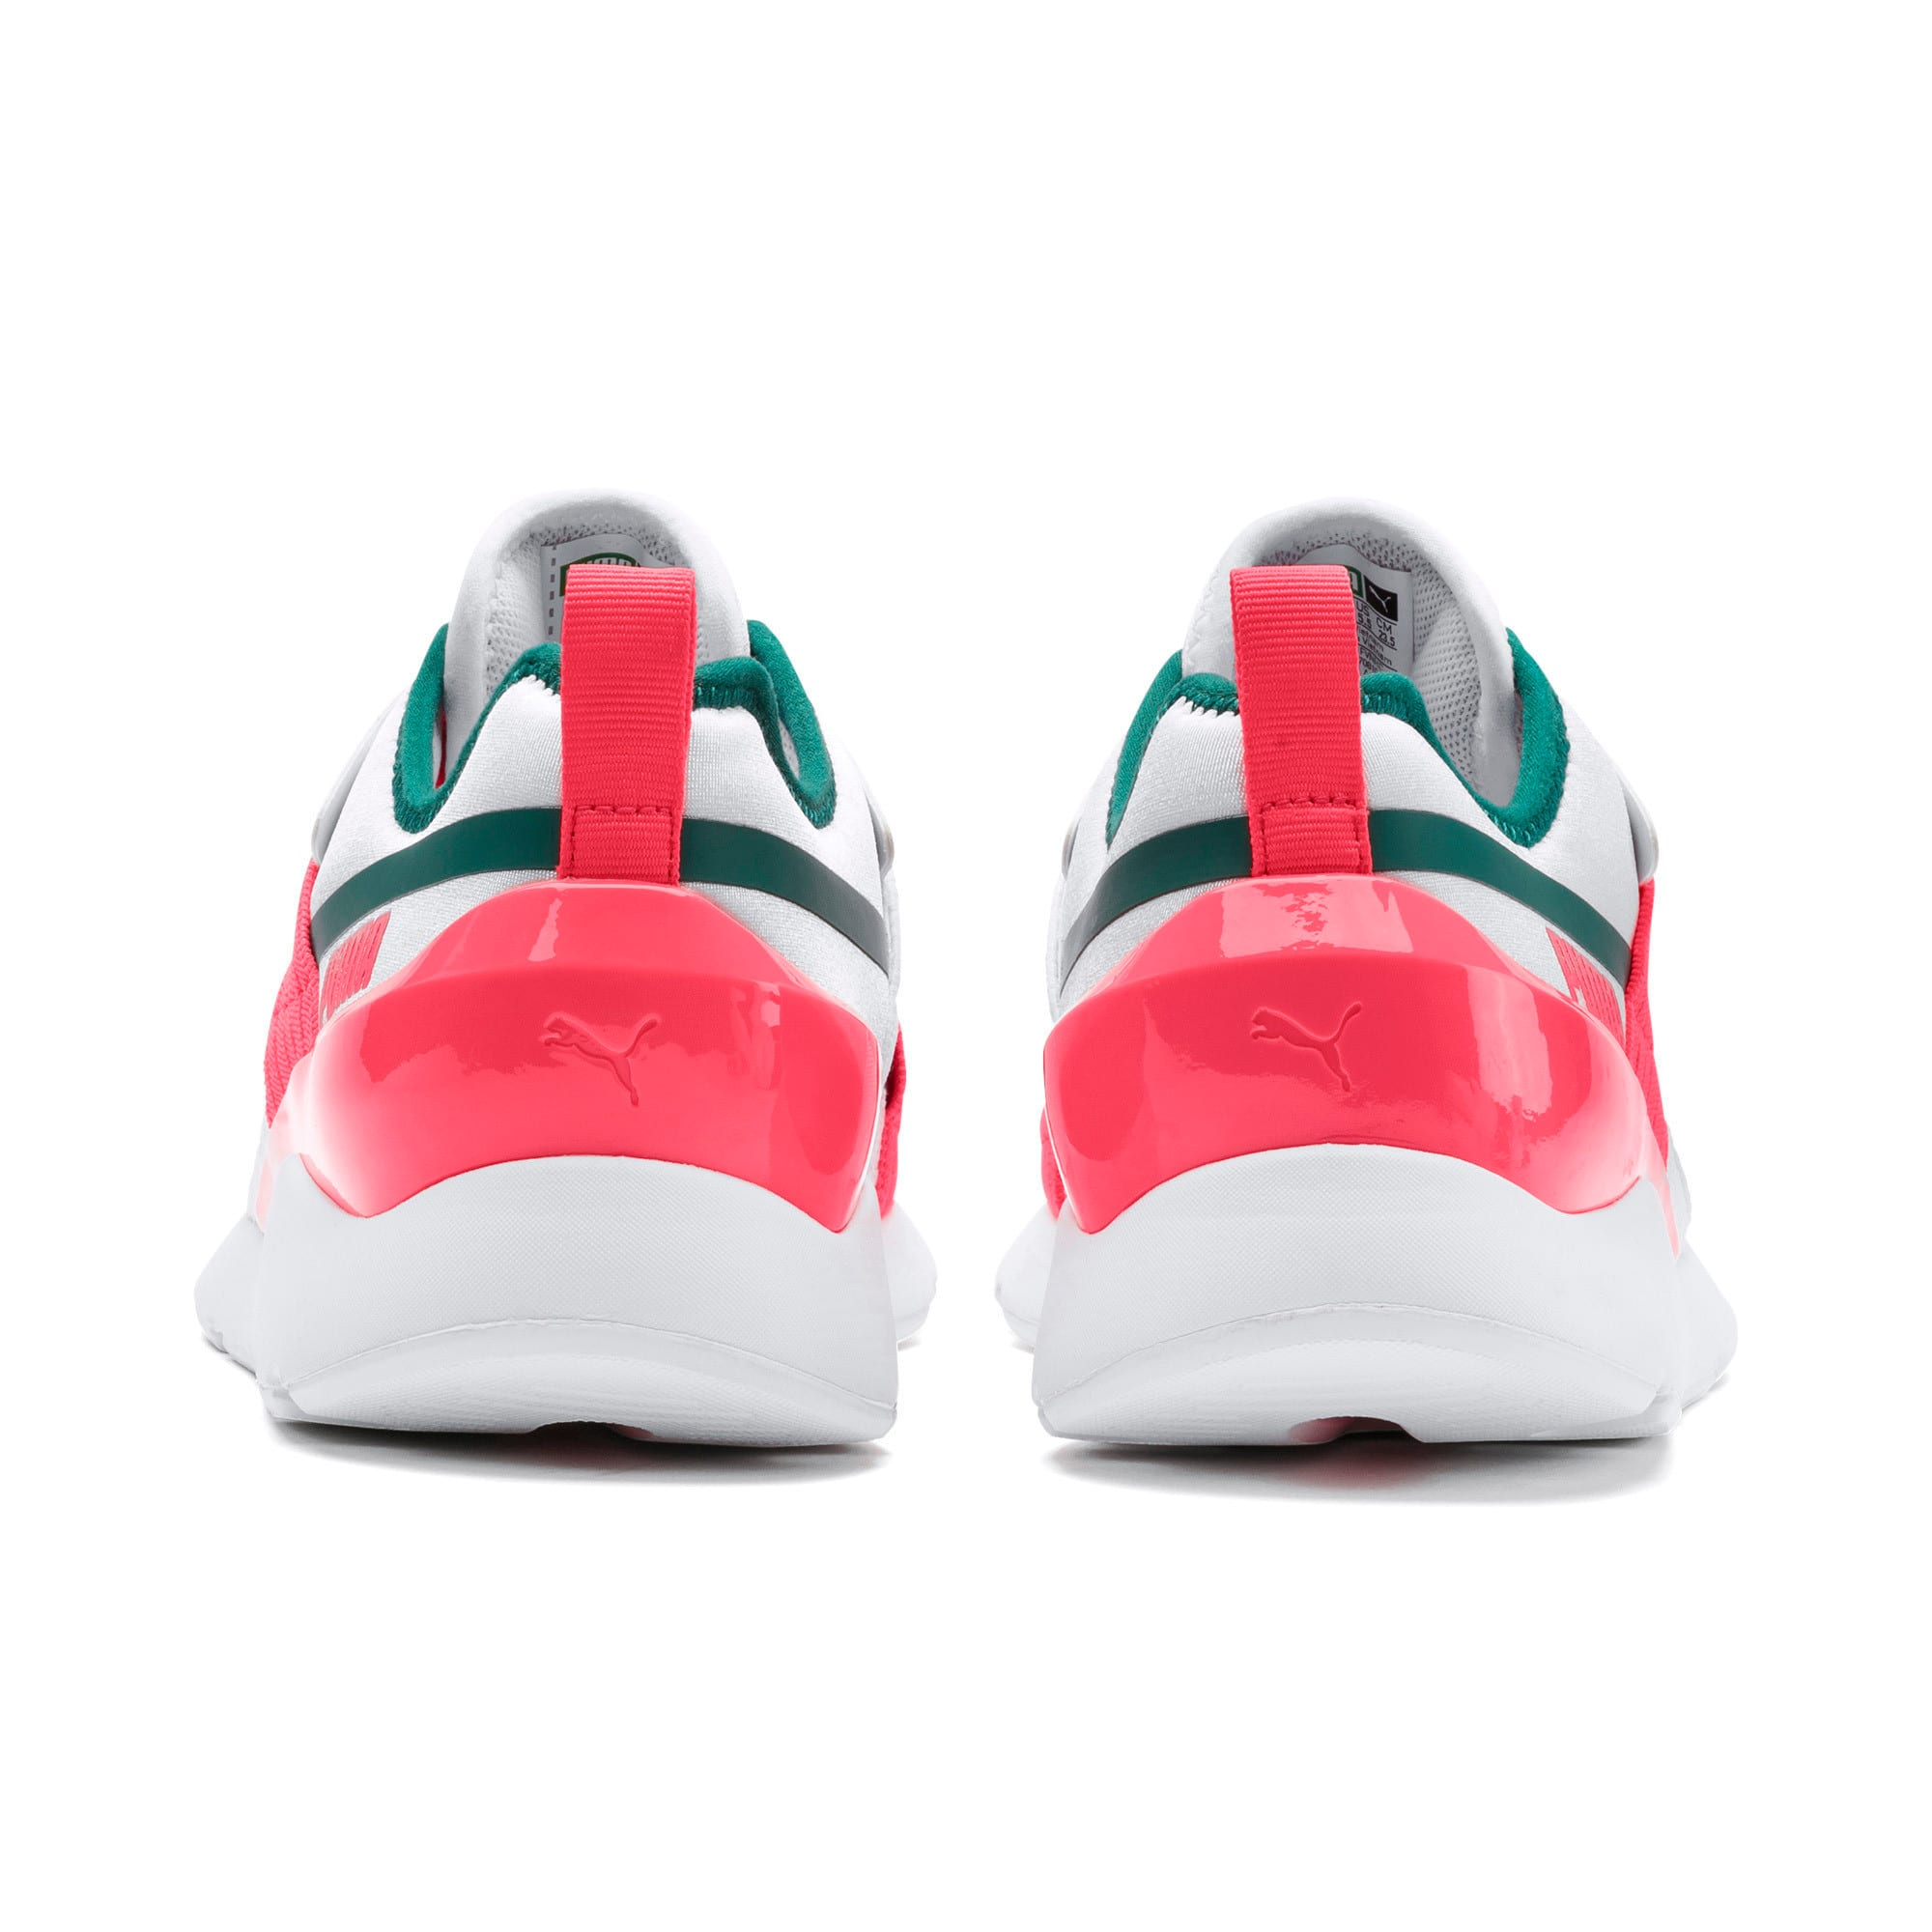 Thumbnail 6 of Muse X-2 Women's Trainers, Puma White-Pink Alert, medium-IND